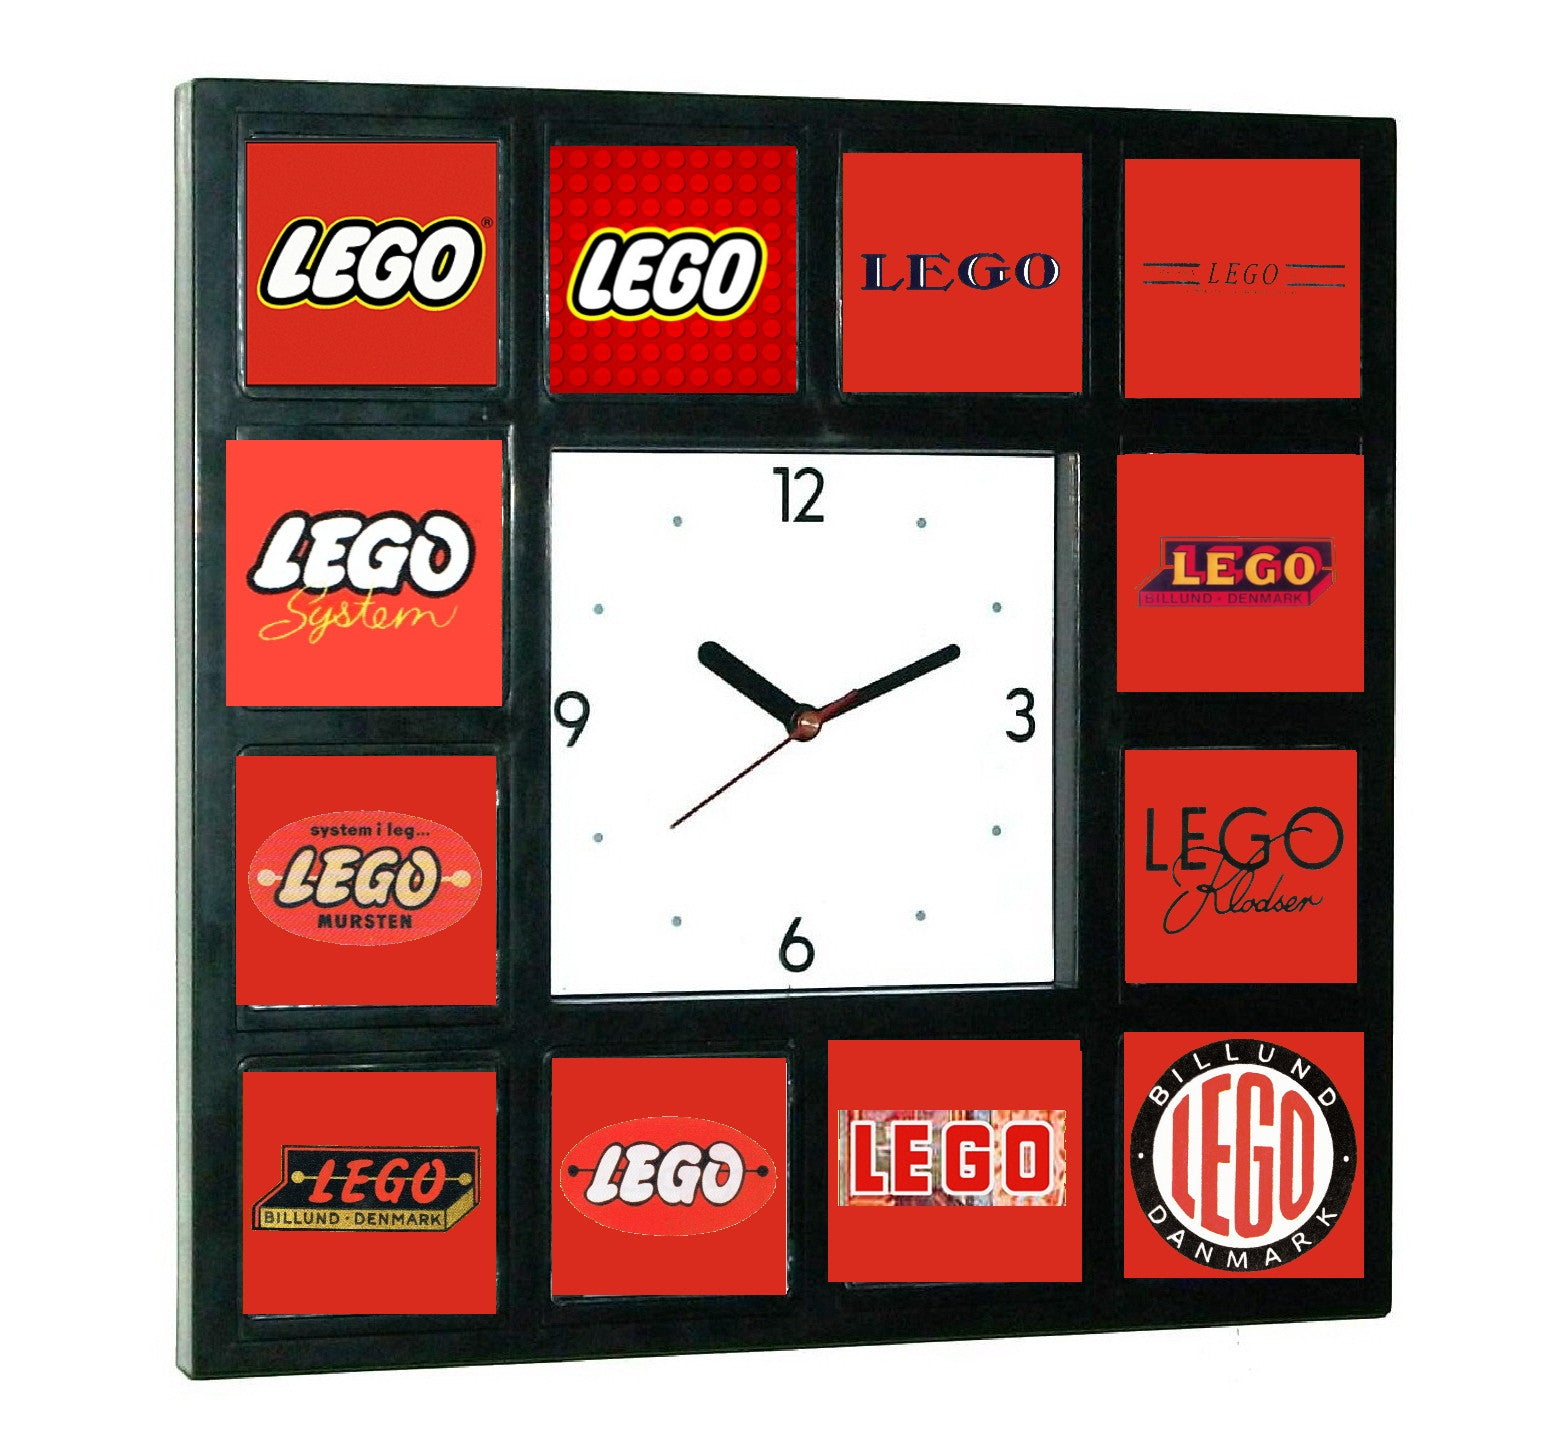 Lego Logo History Clock With 12 Pictures Final Score